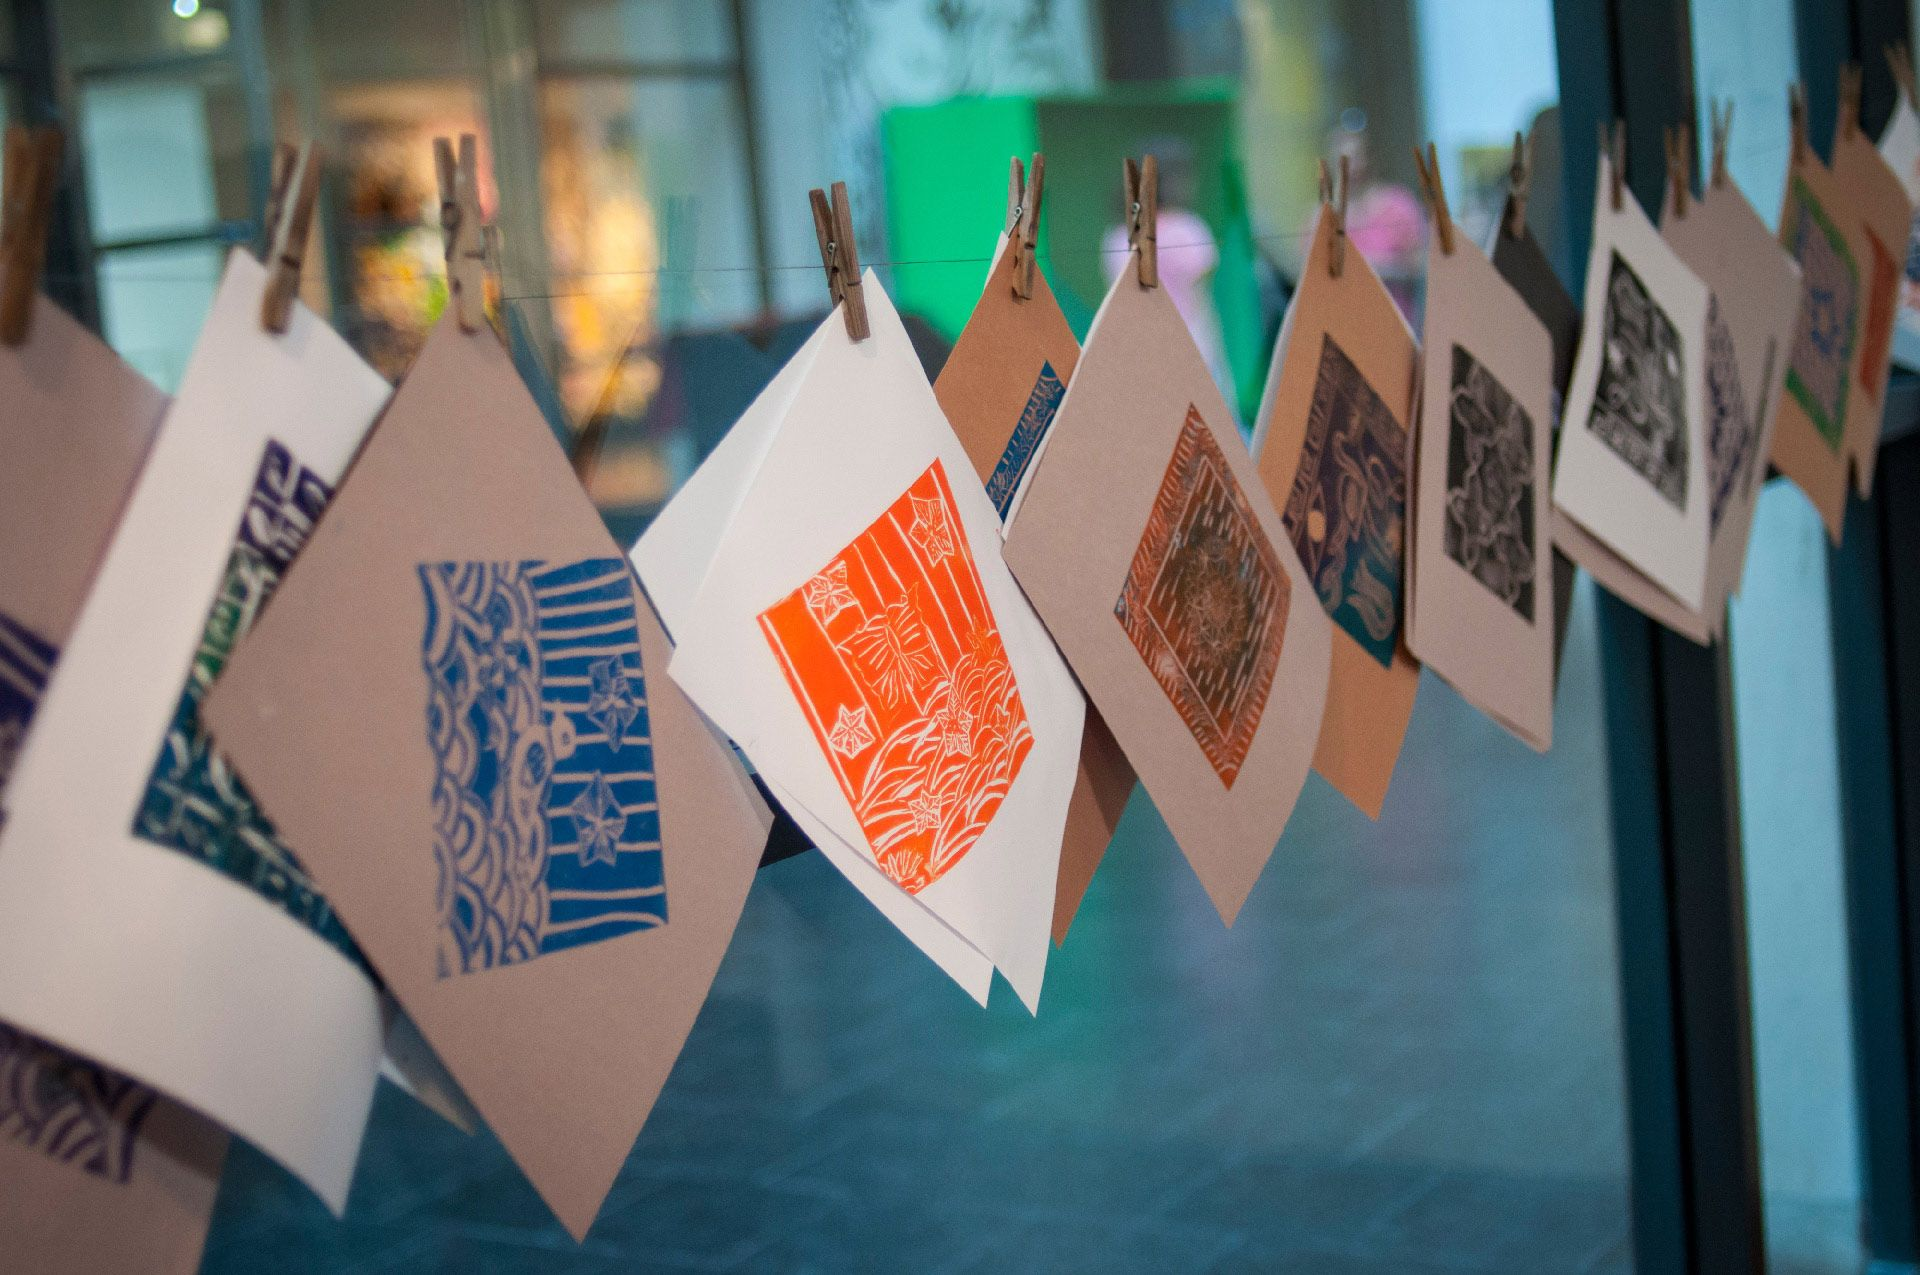 stamps that were made during the Thursdays at the Museum activity by the MMFA. Photo © Olivier Schwaiki